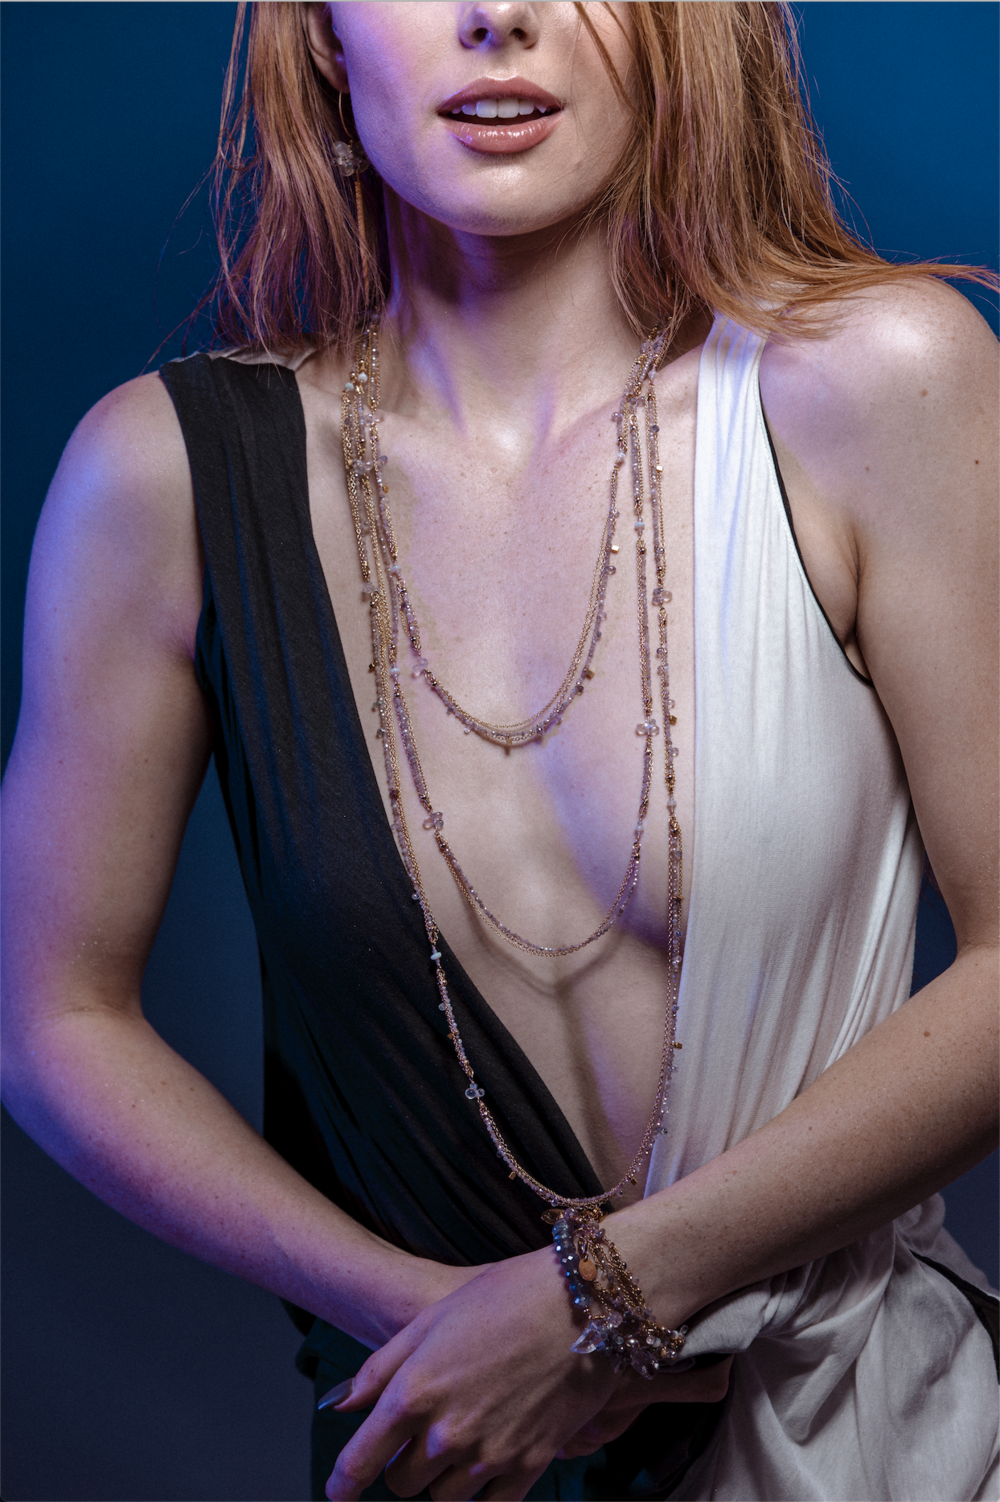 model wearing layering necklaces